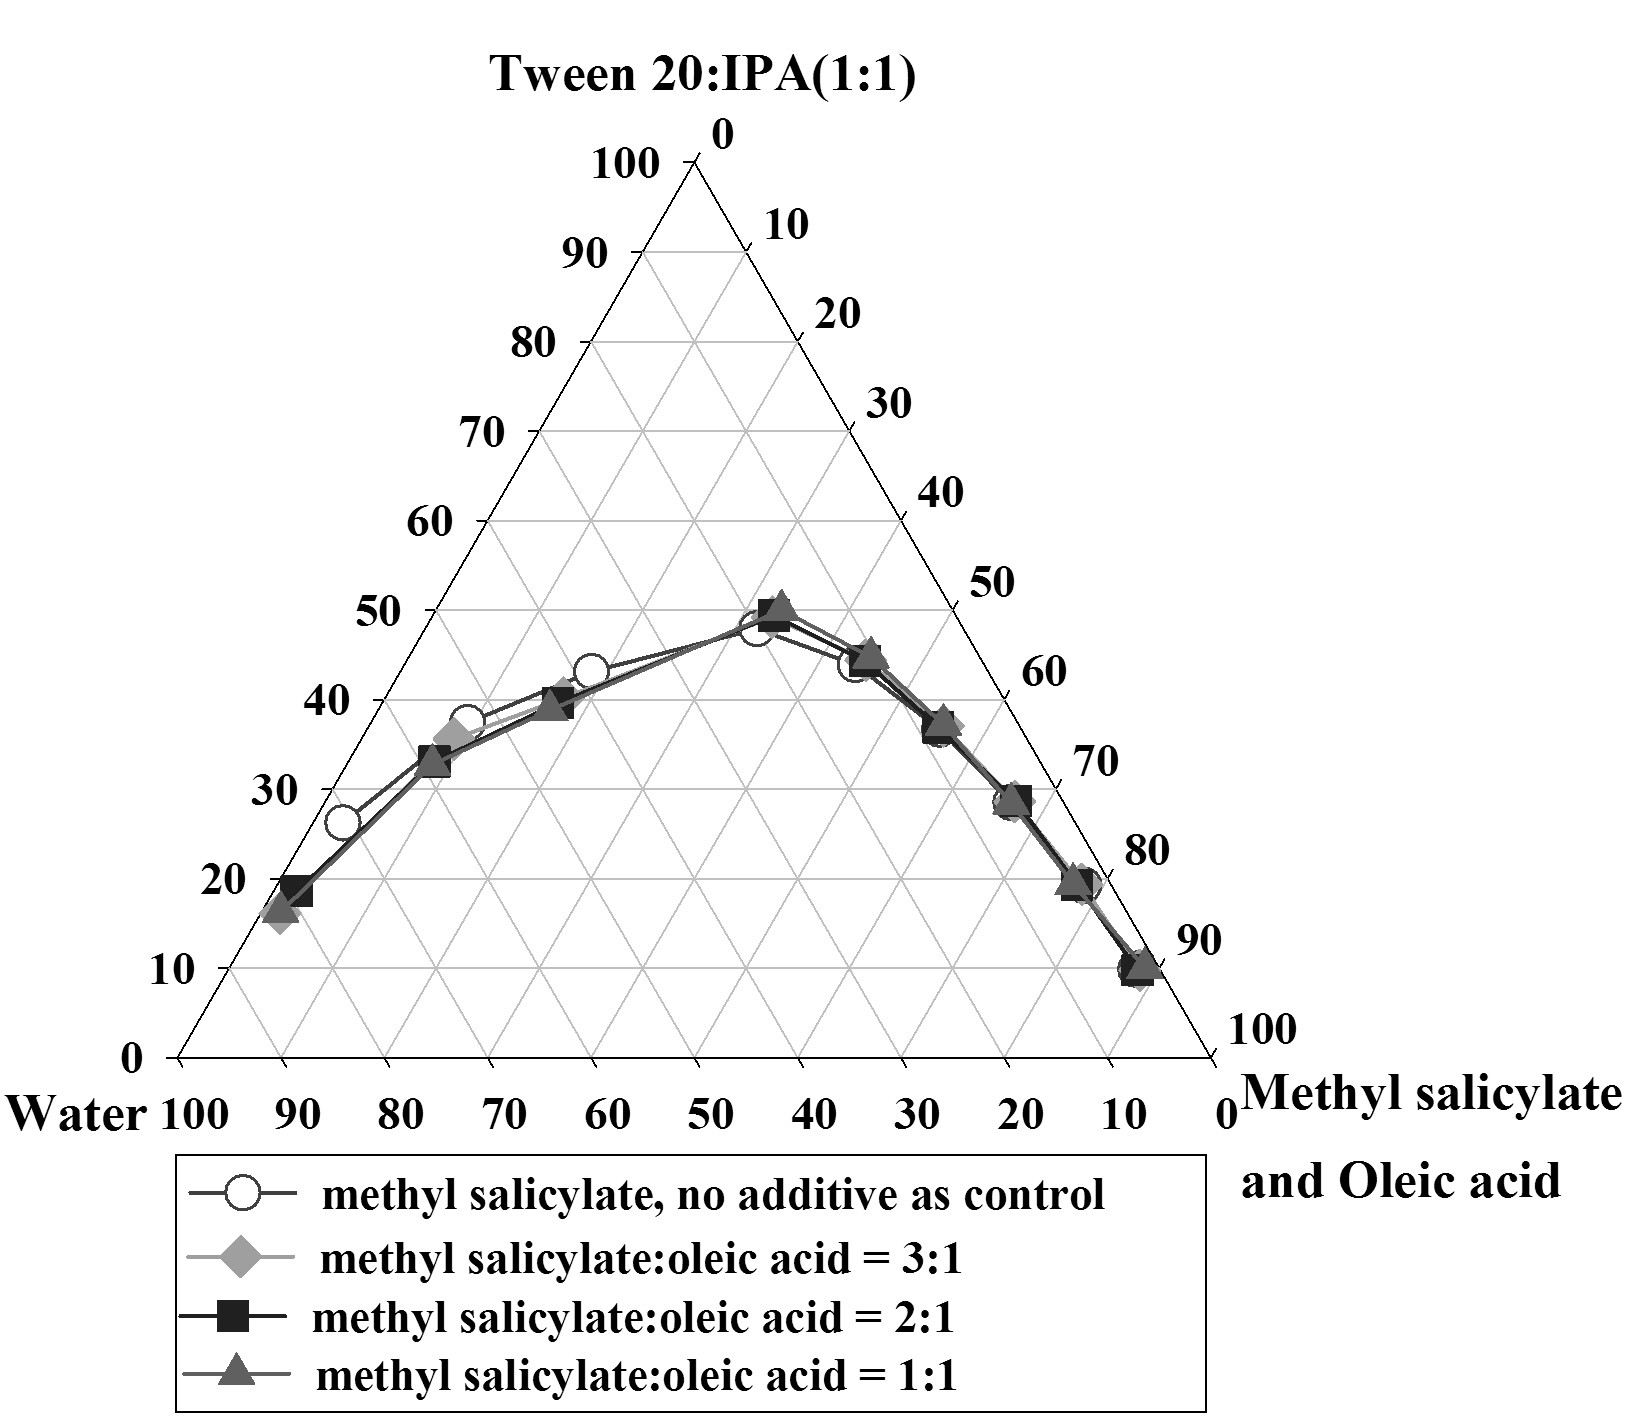 Leesajakul 2 the effect of oleic acid a ipp b and ipm c as additive in the oil phase on the pseudoternary phase diagrams pooptronica